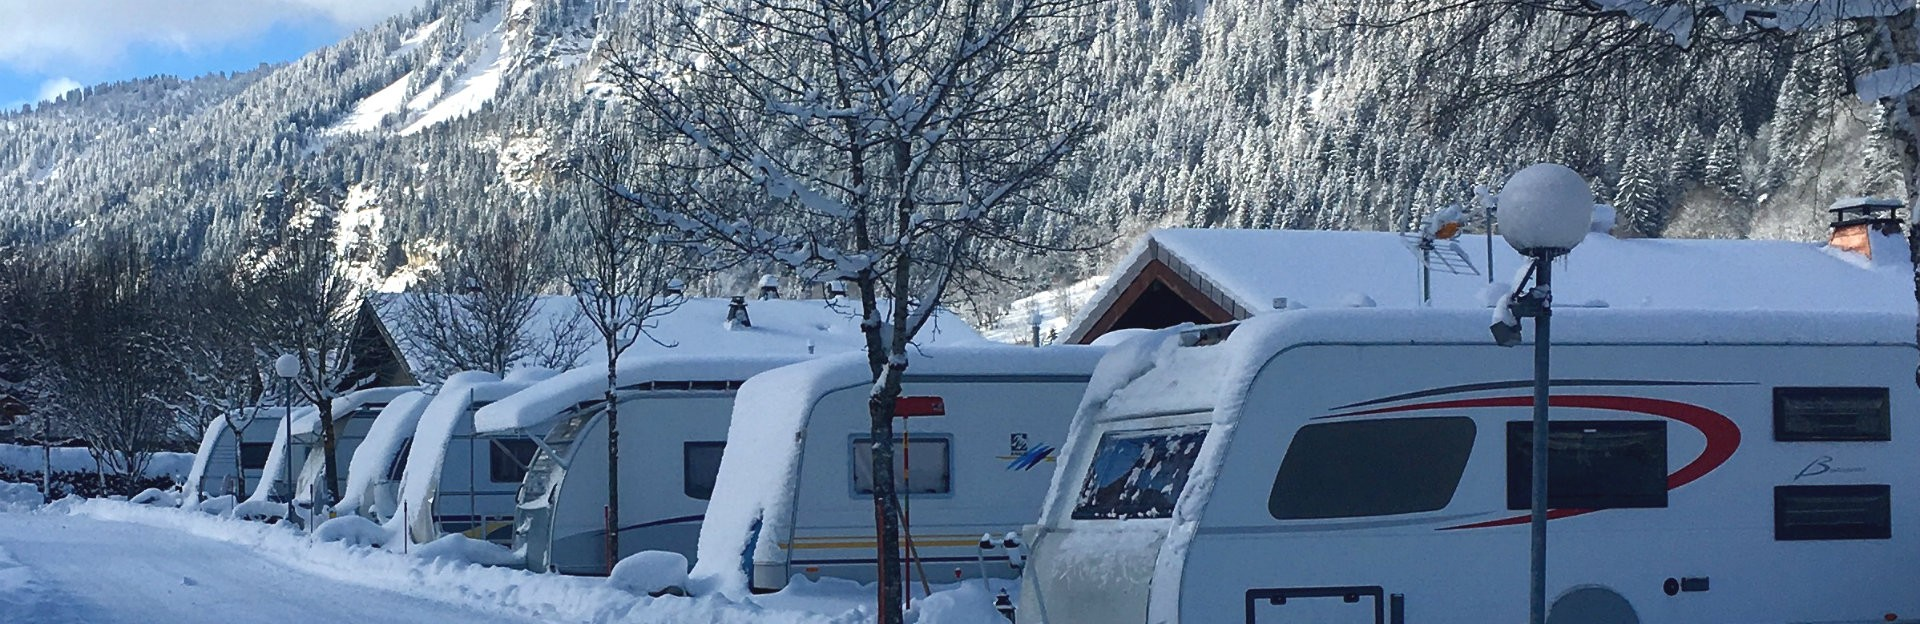 camping l'oustalet | montagnes | grand air | hiver | domaine skiable | châtel | 1